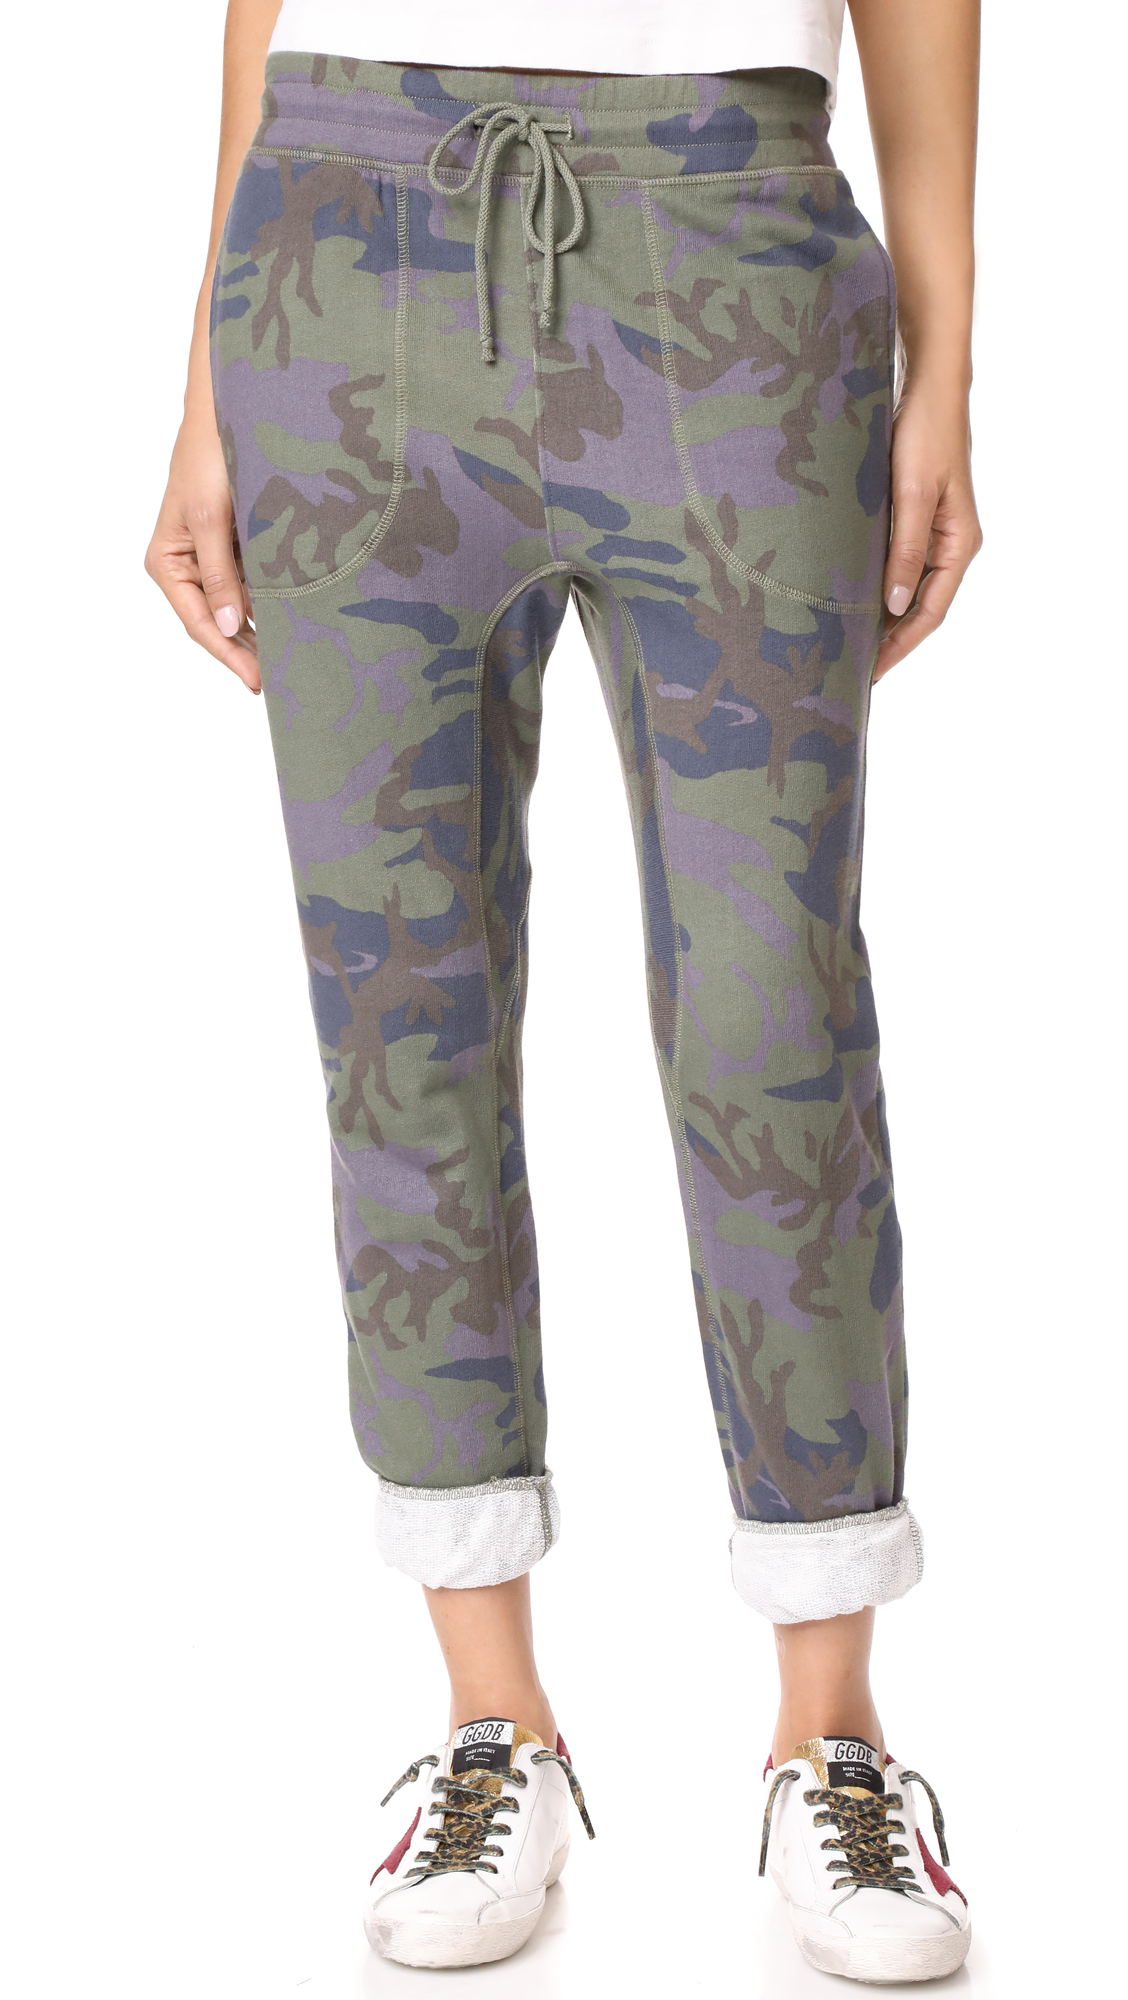 Free People Printed Camo Scout Joggers - Army